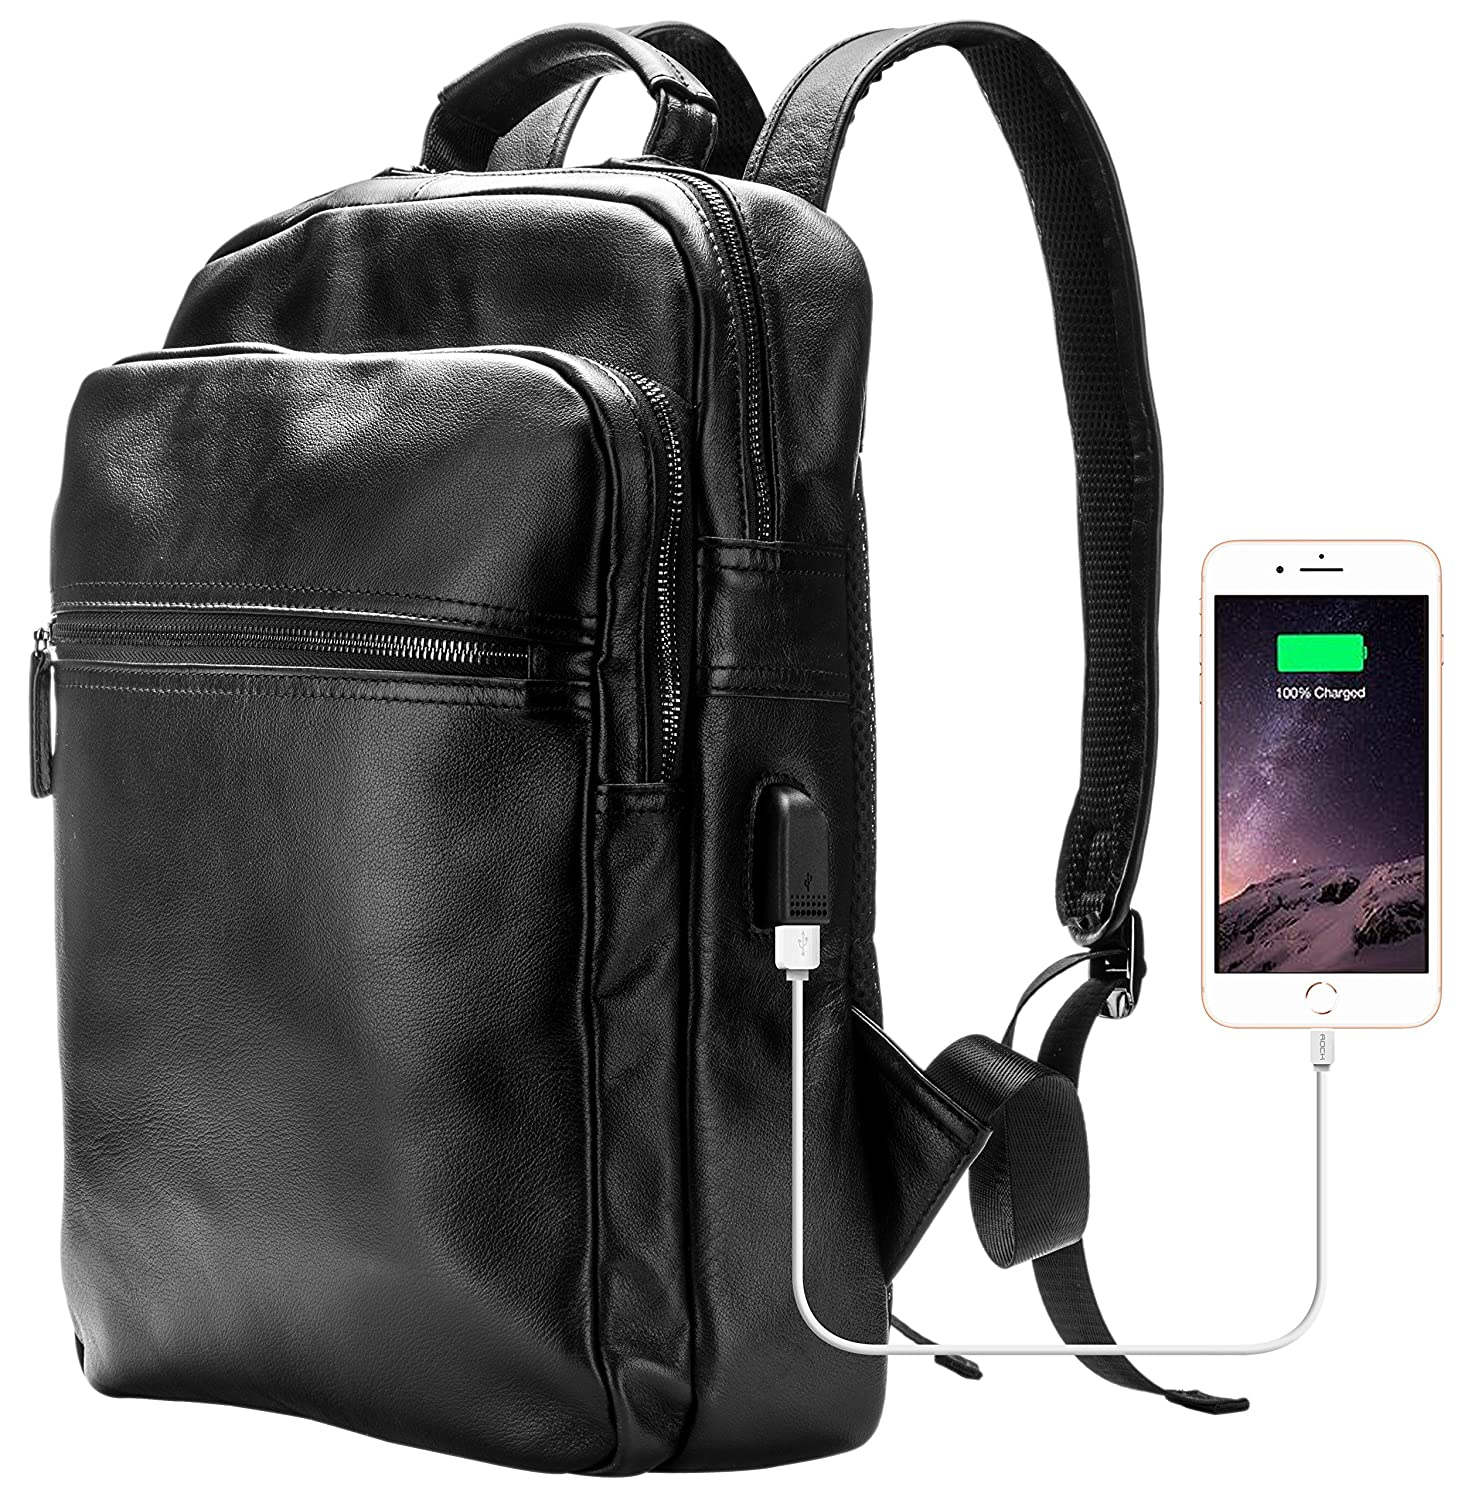 Genuine Leather Laptop Backpack for Men with USB Charging Port Fits 14 Inch,Casual Daypack for Travel Business Work College School